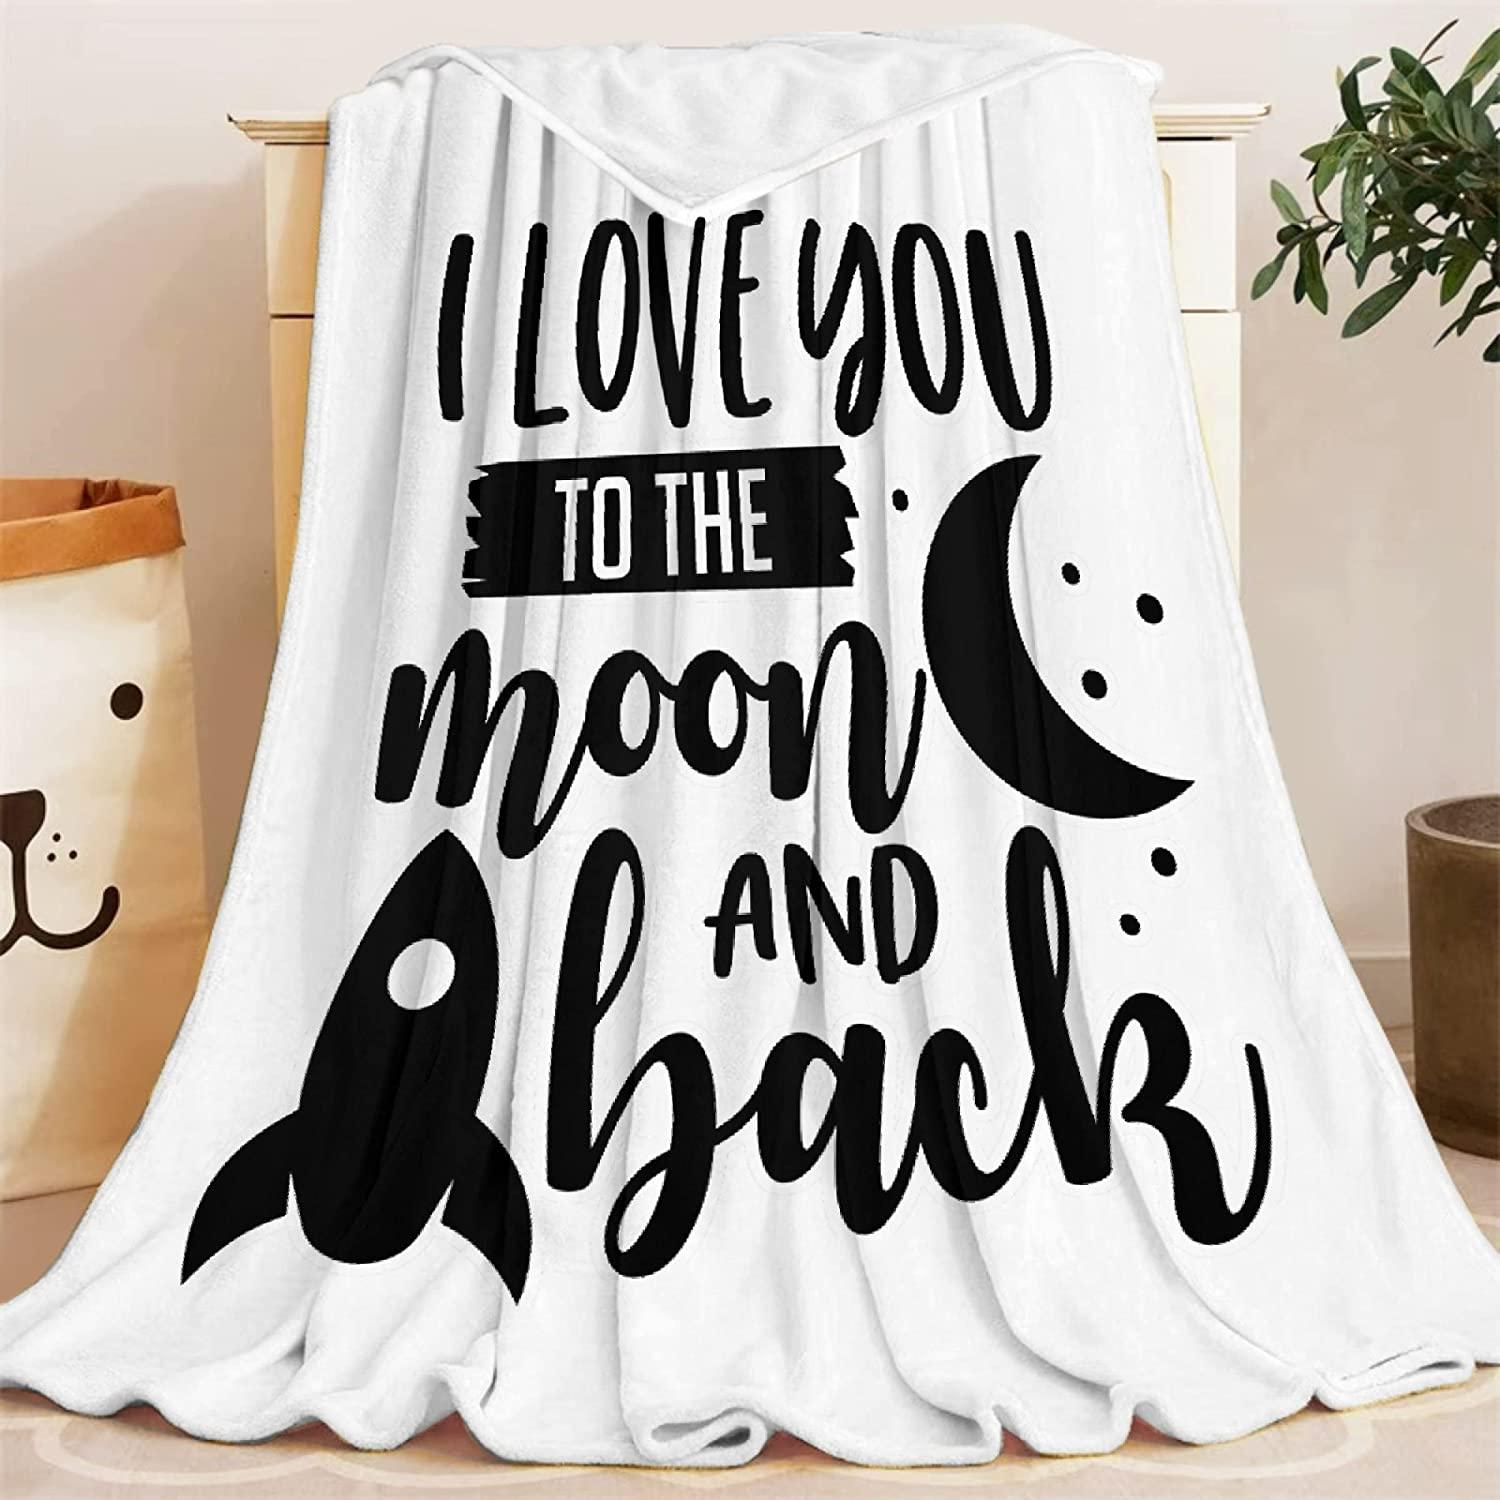 Blanket I Love You to The Fleece Popular overseas Throw Moon Lightweight Back Max 53% OFF and